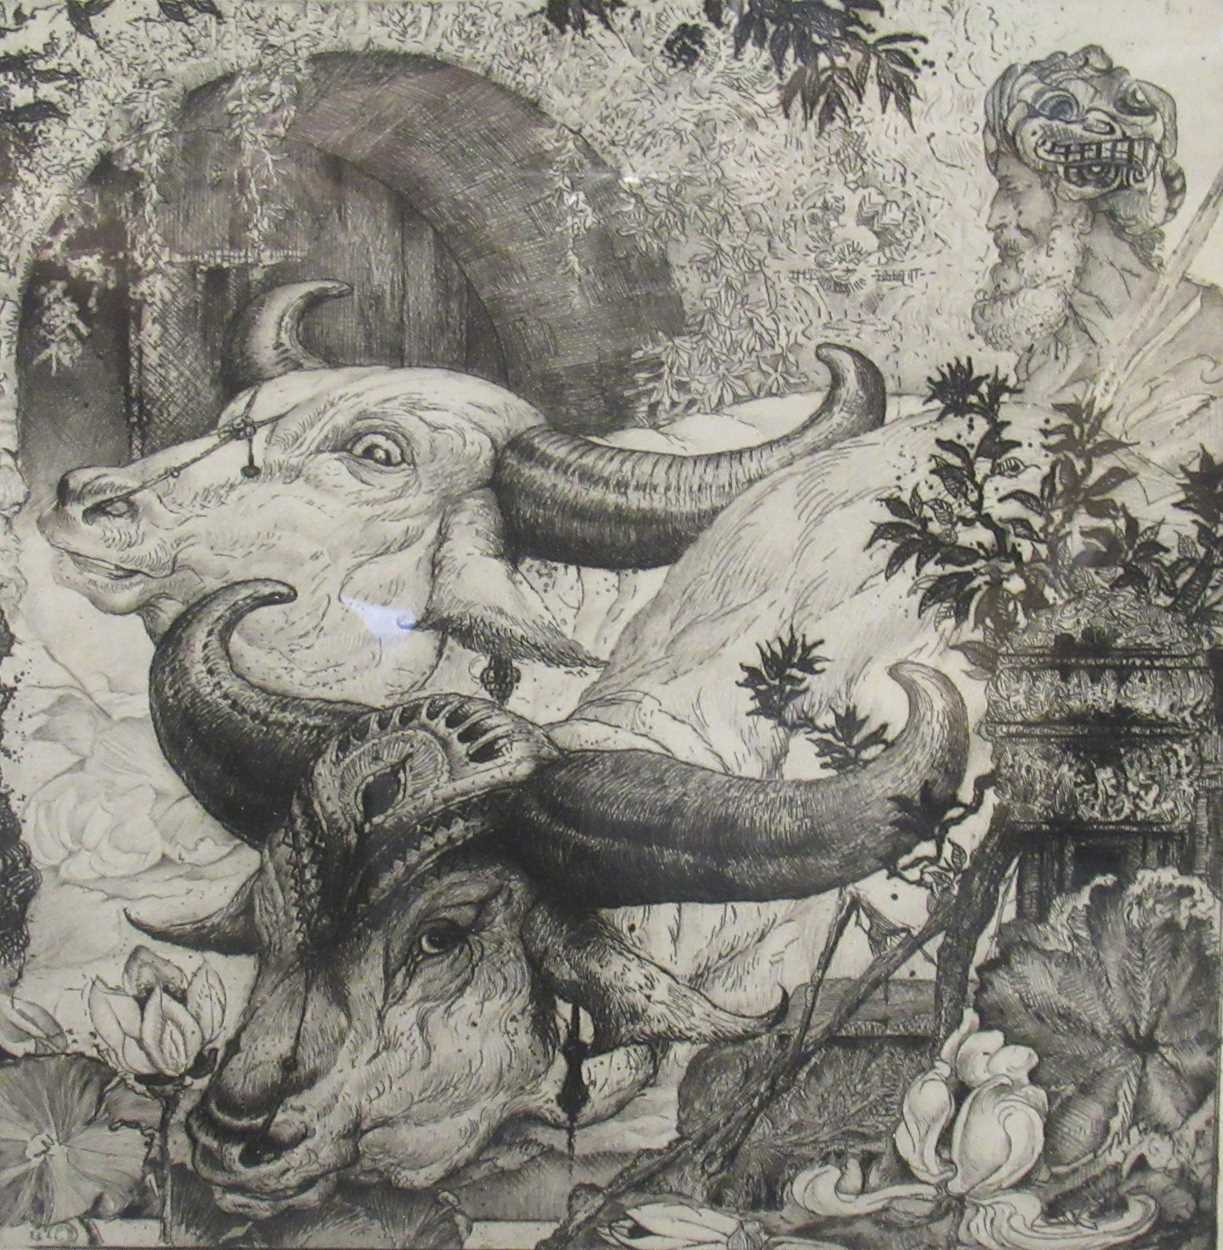 Edward Julius Detmold (1883-1957) At the Edge of the Lotus Pool, signed etching, 19.5 x 19.5cm